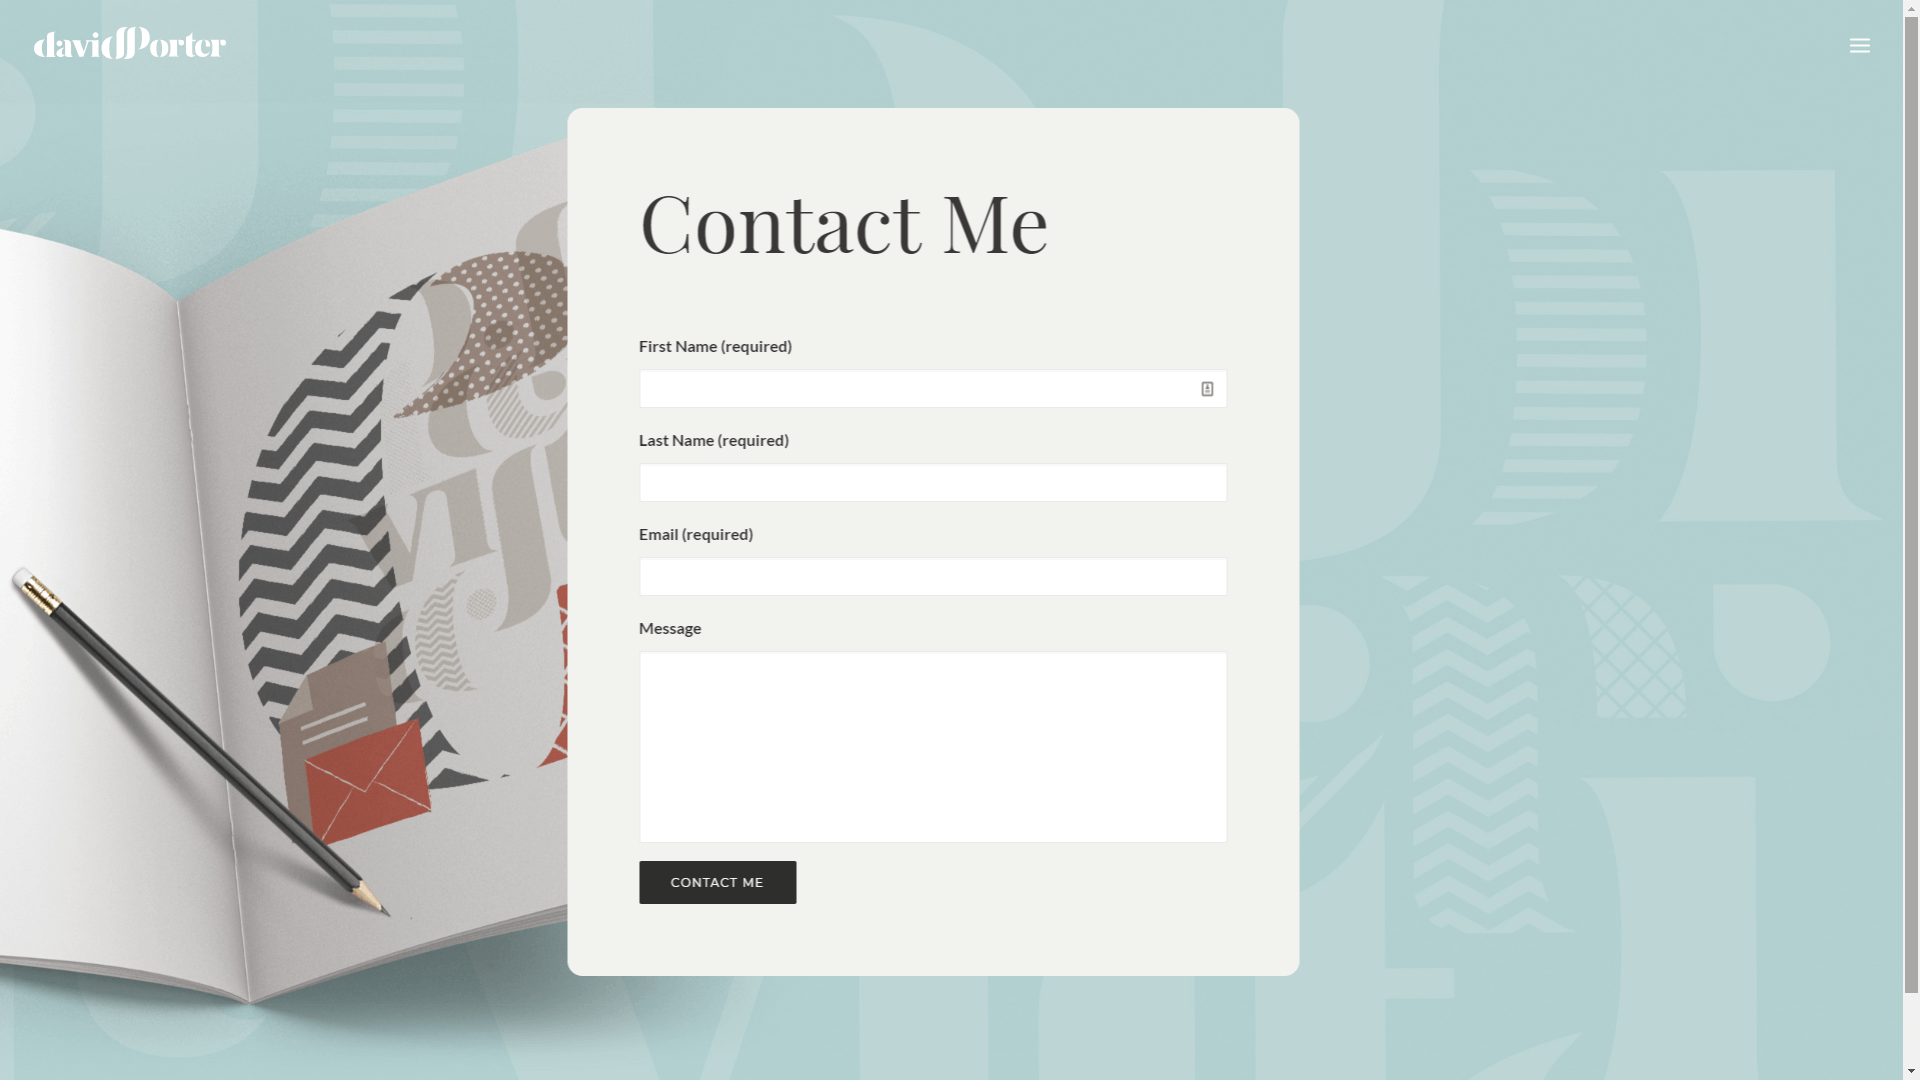 A homepage contact form.